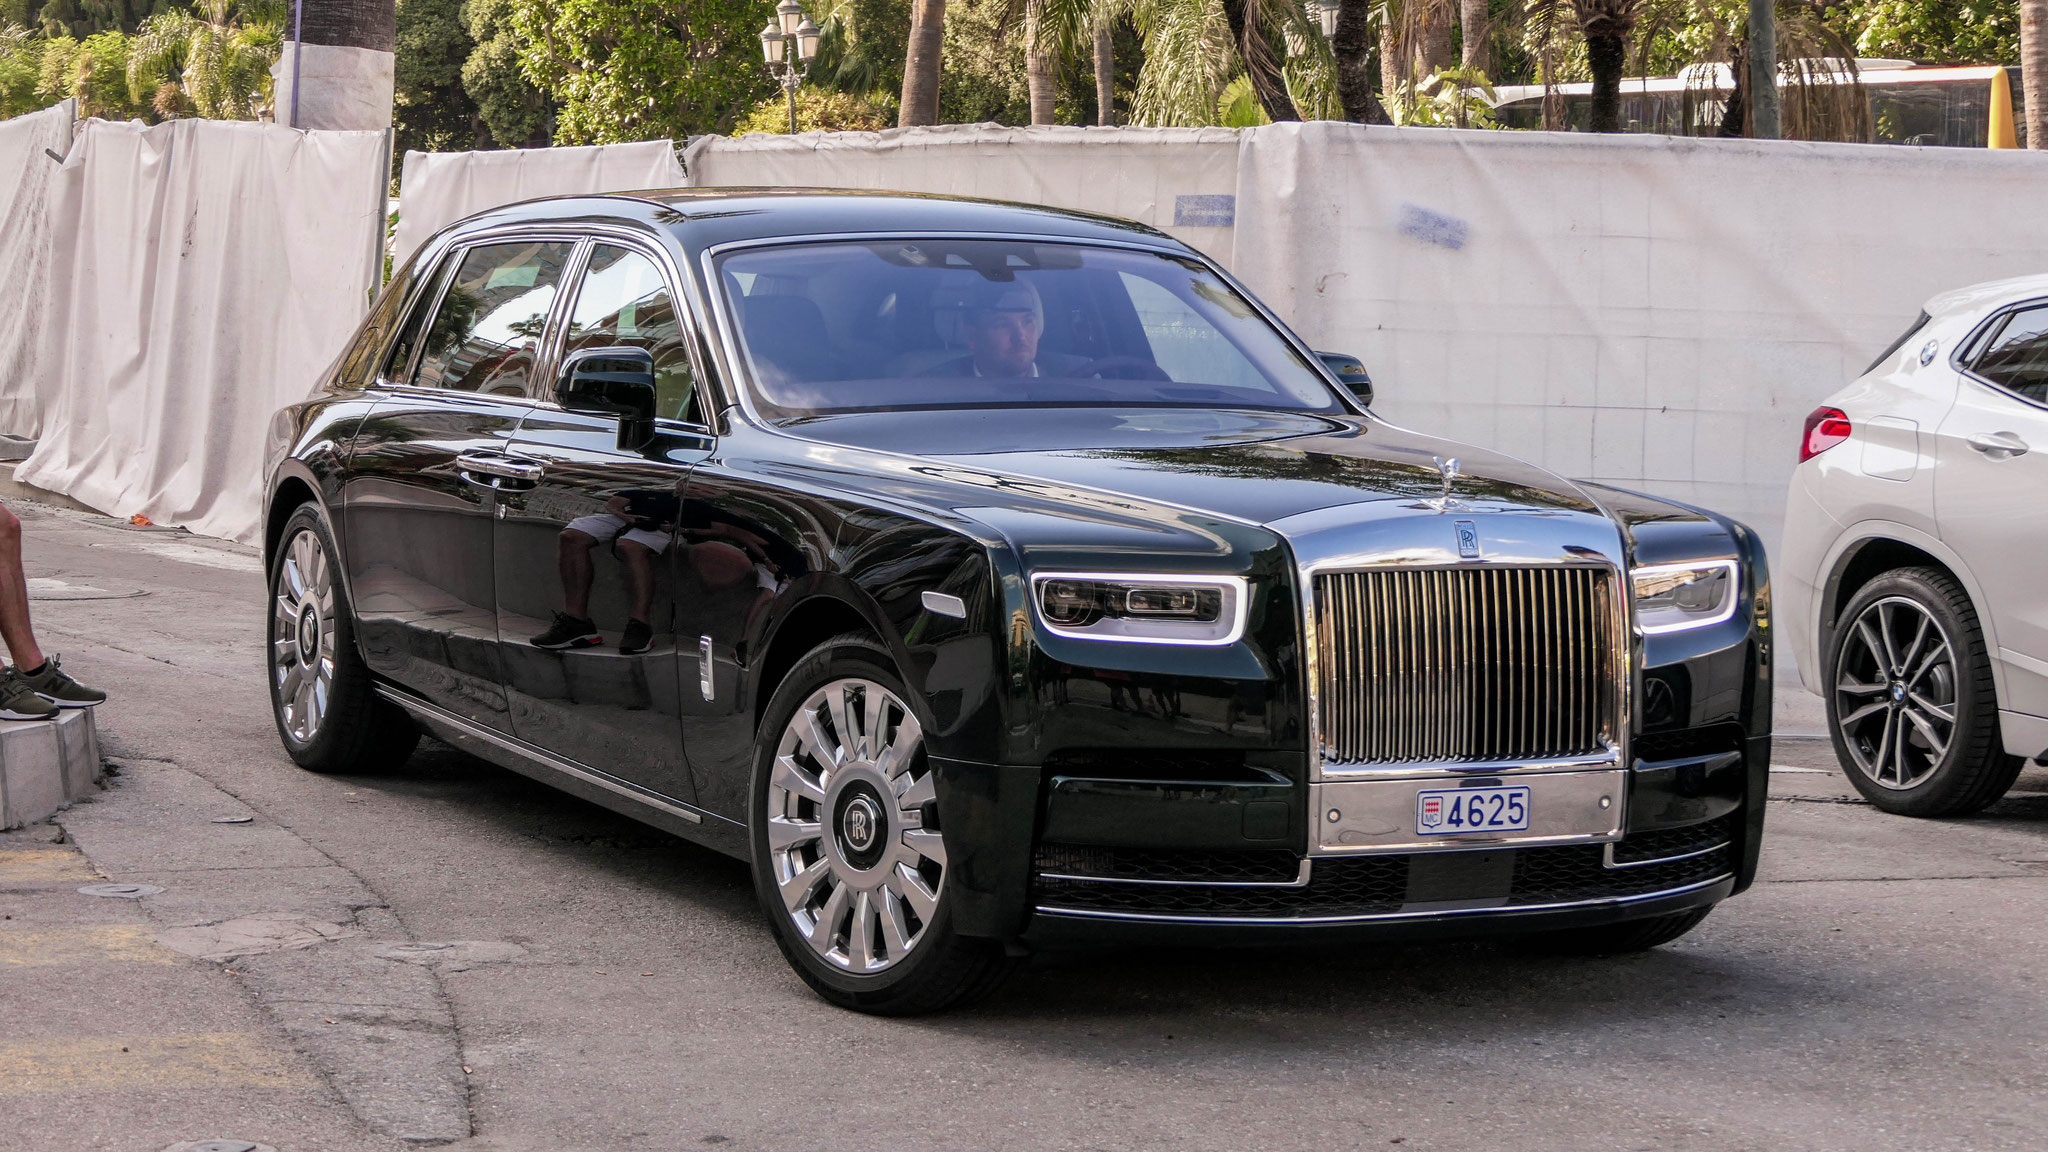 Rolls Royce Phantom - 4625 (MC)